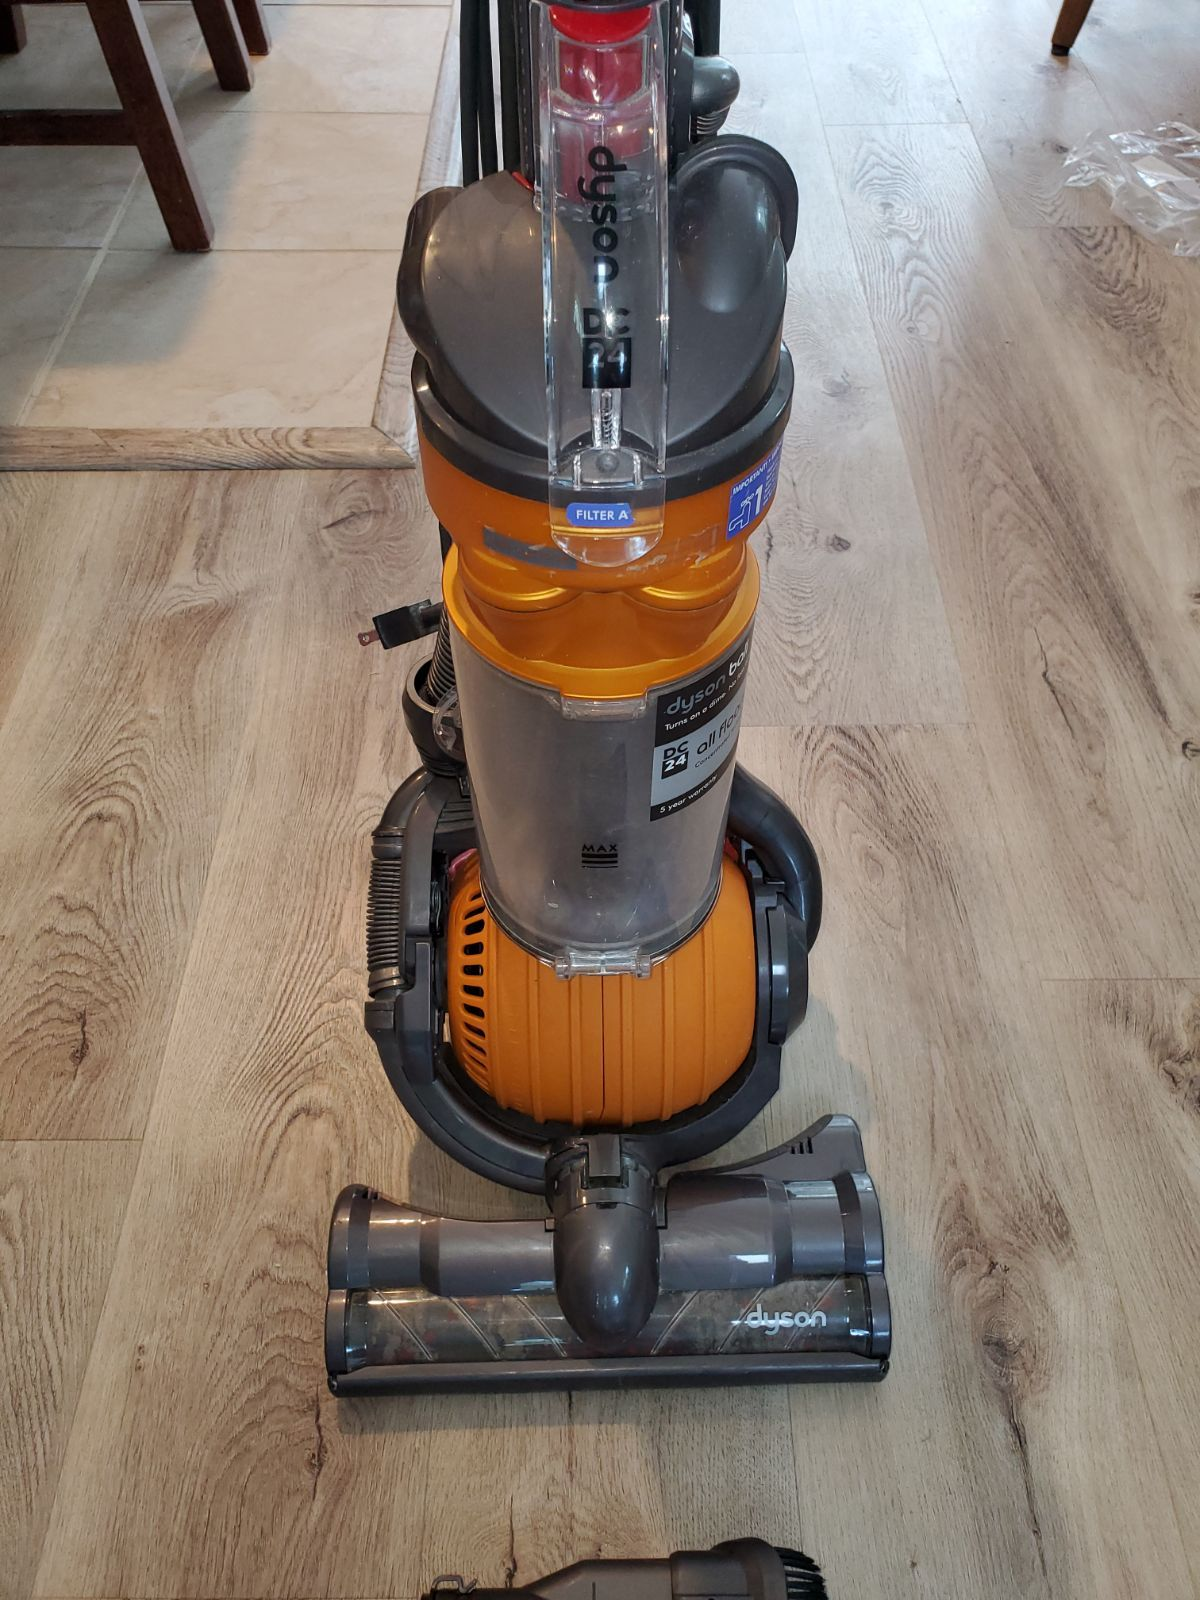 Dyson Dc24 Ball Vacuum Good Condition Works Fine But Does Have Some Cosmetic Flaws Stickers Are Worn And Broken Piece That Used Dyson Vacuums Dyson Vacuums